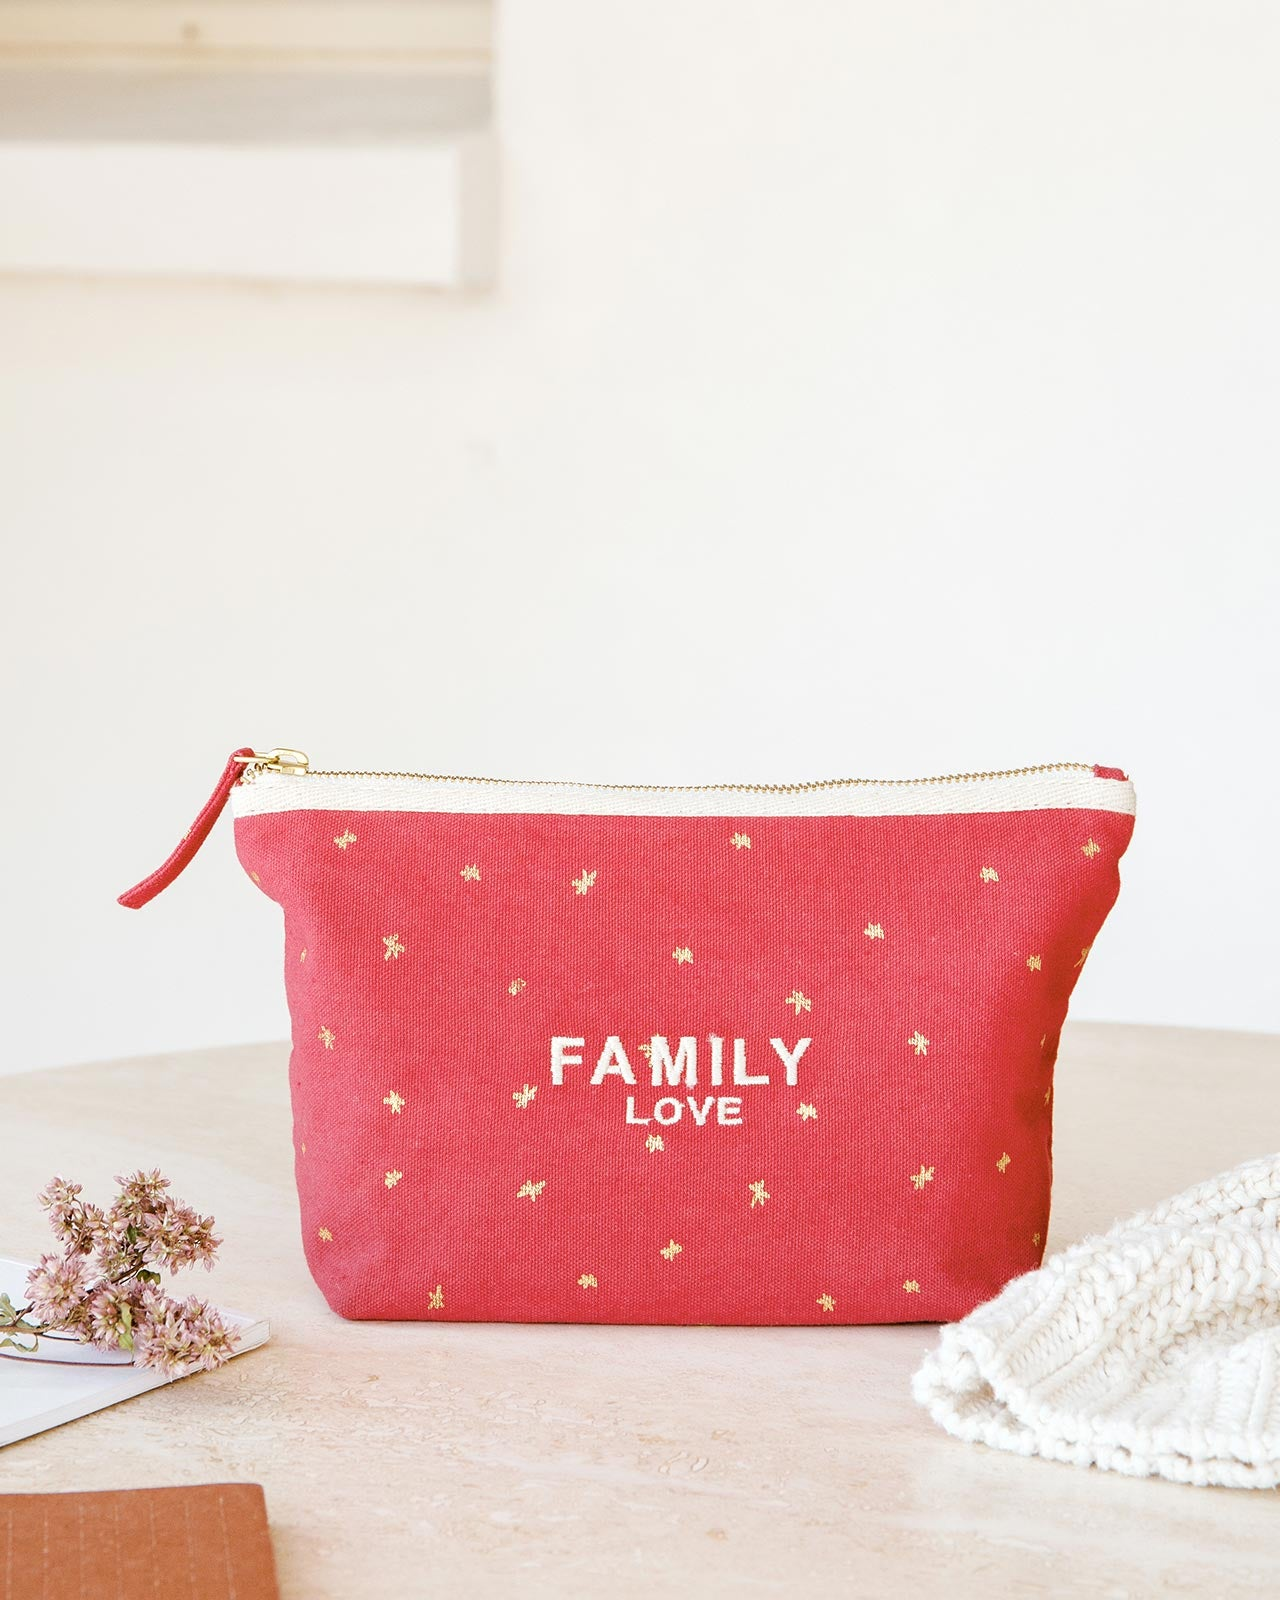 La pochette brodée Family love rouge